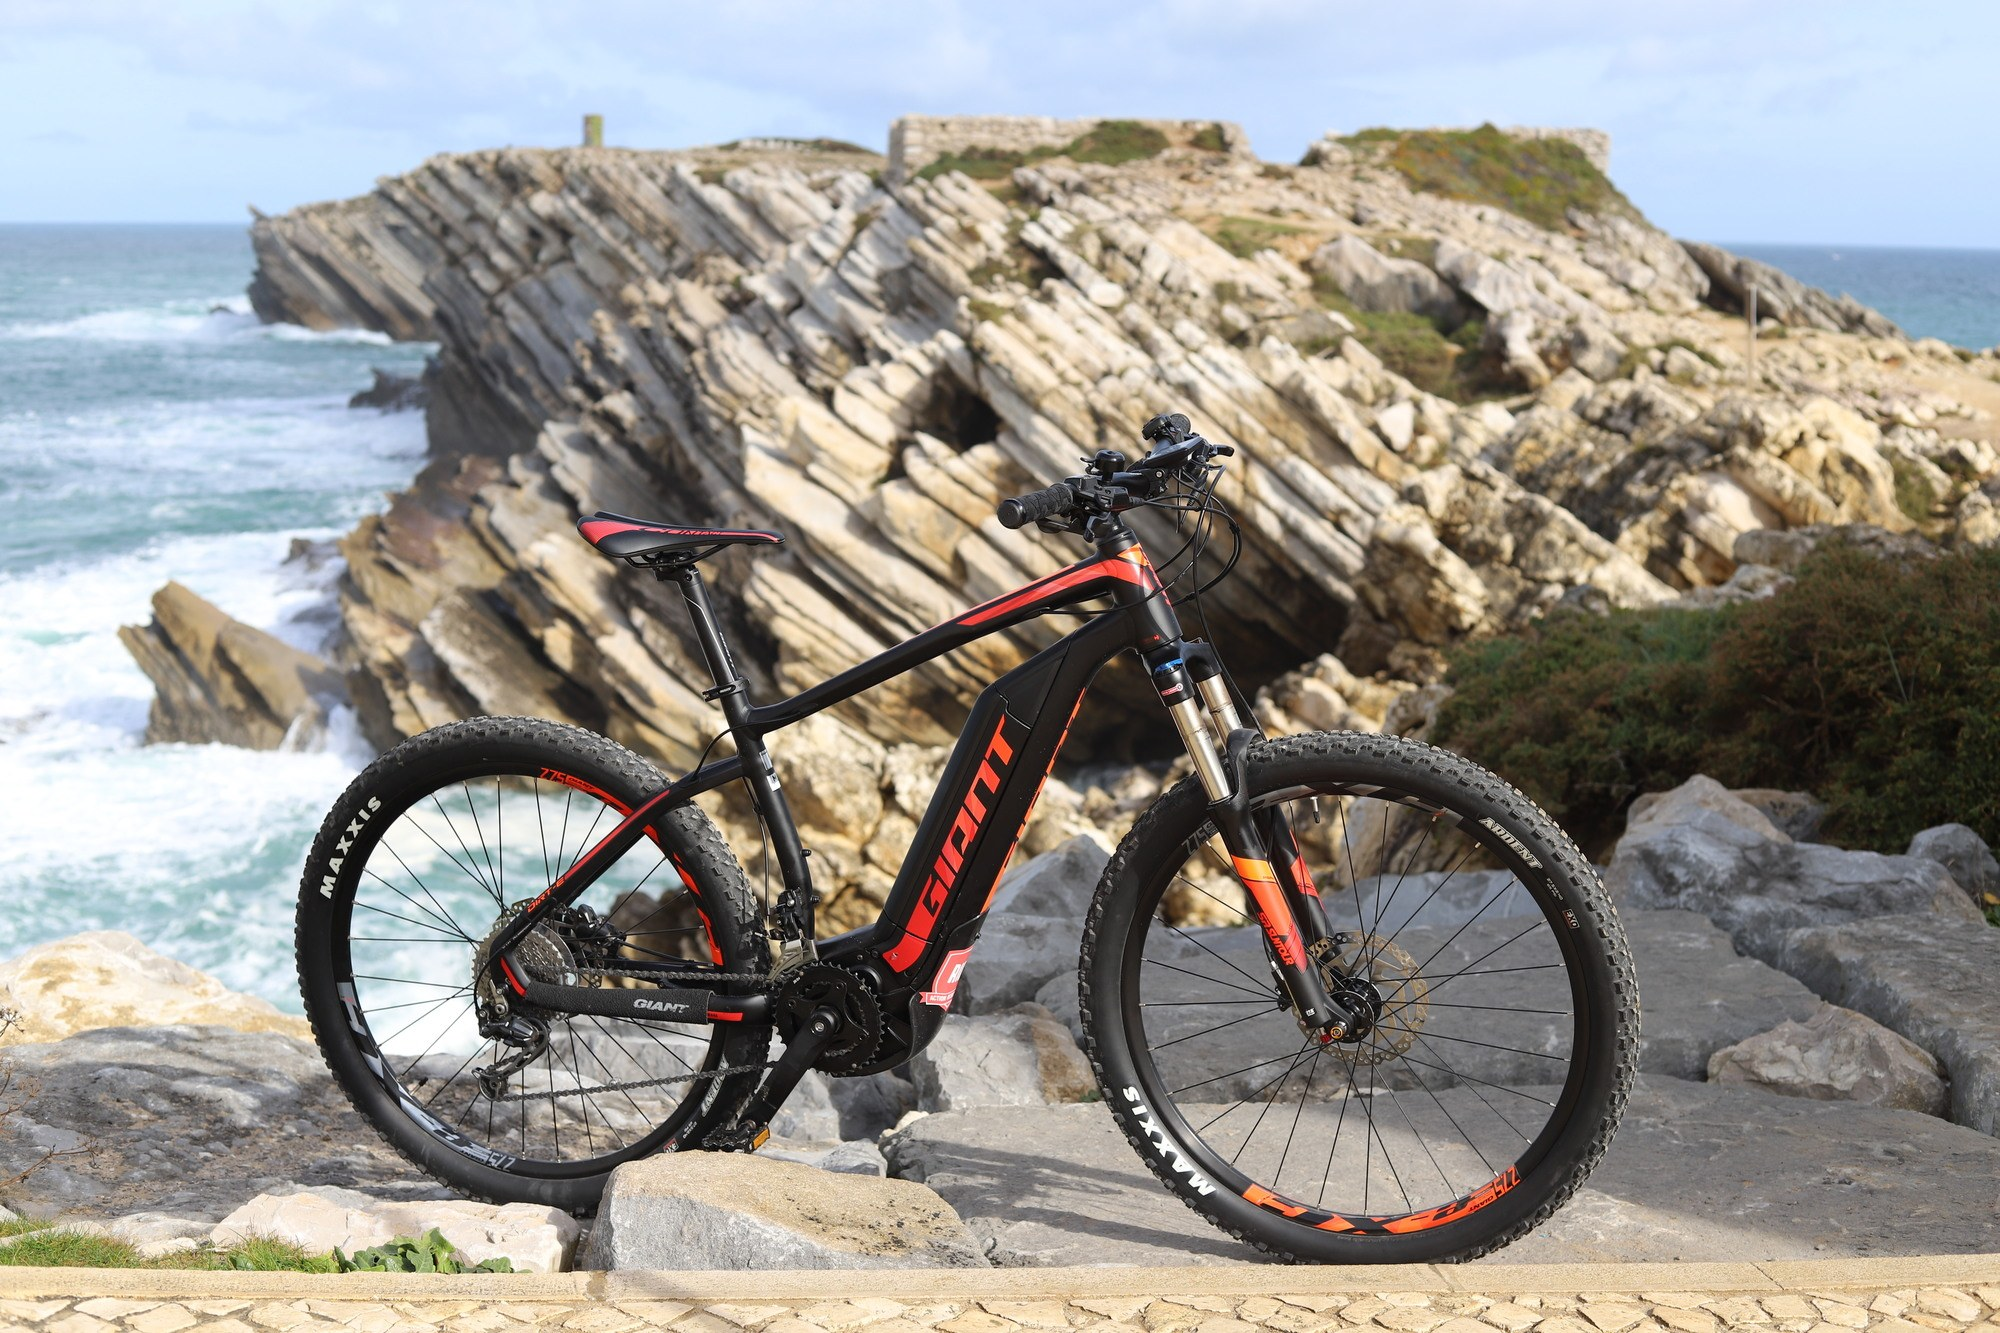 500/Photos/academies/Bike/hotel-ride-surf-spa-peniche-velo-vtt-electrique-1-JPG.jpg